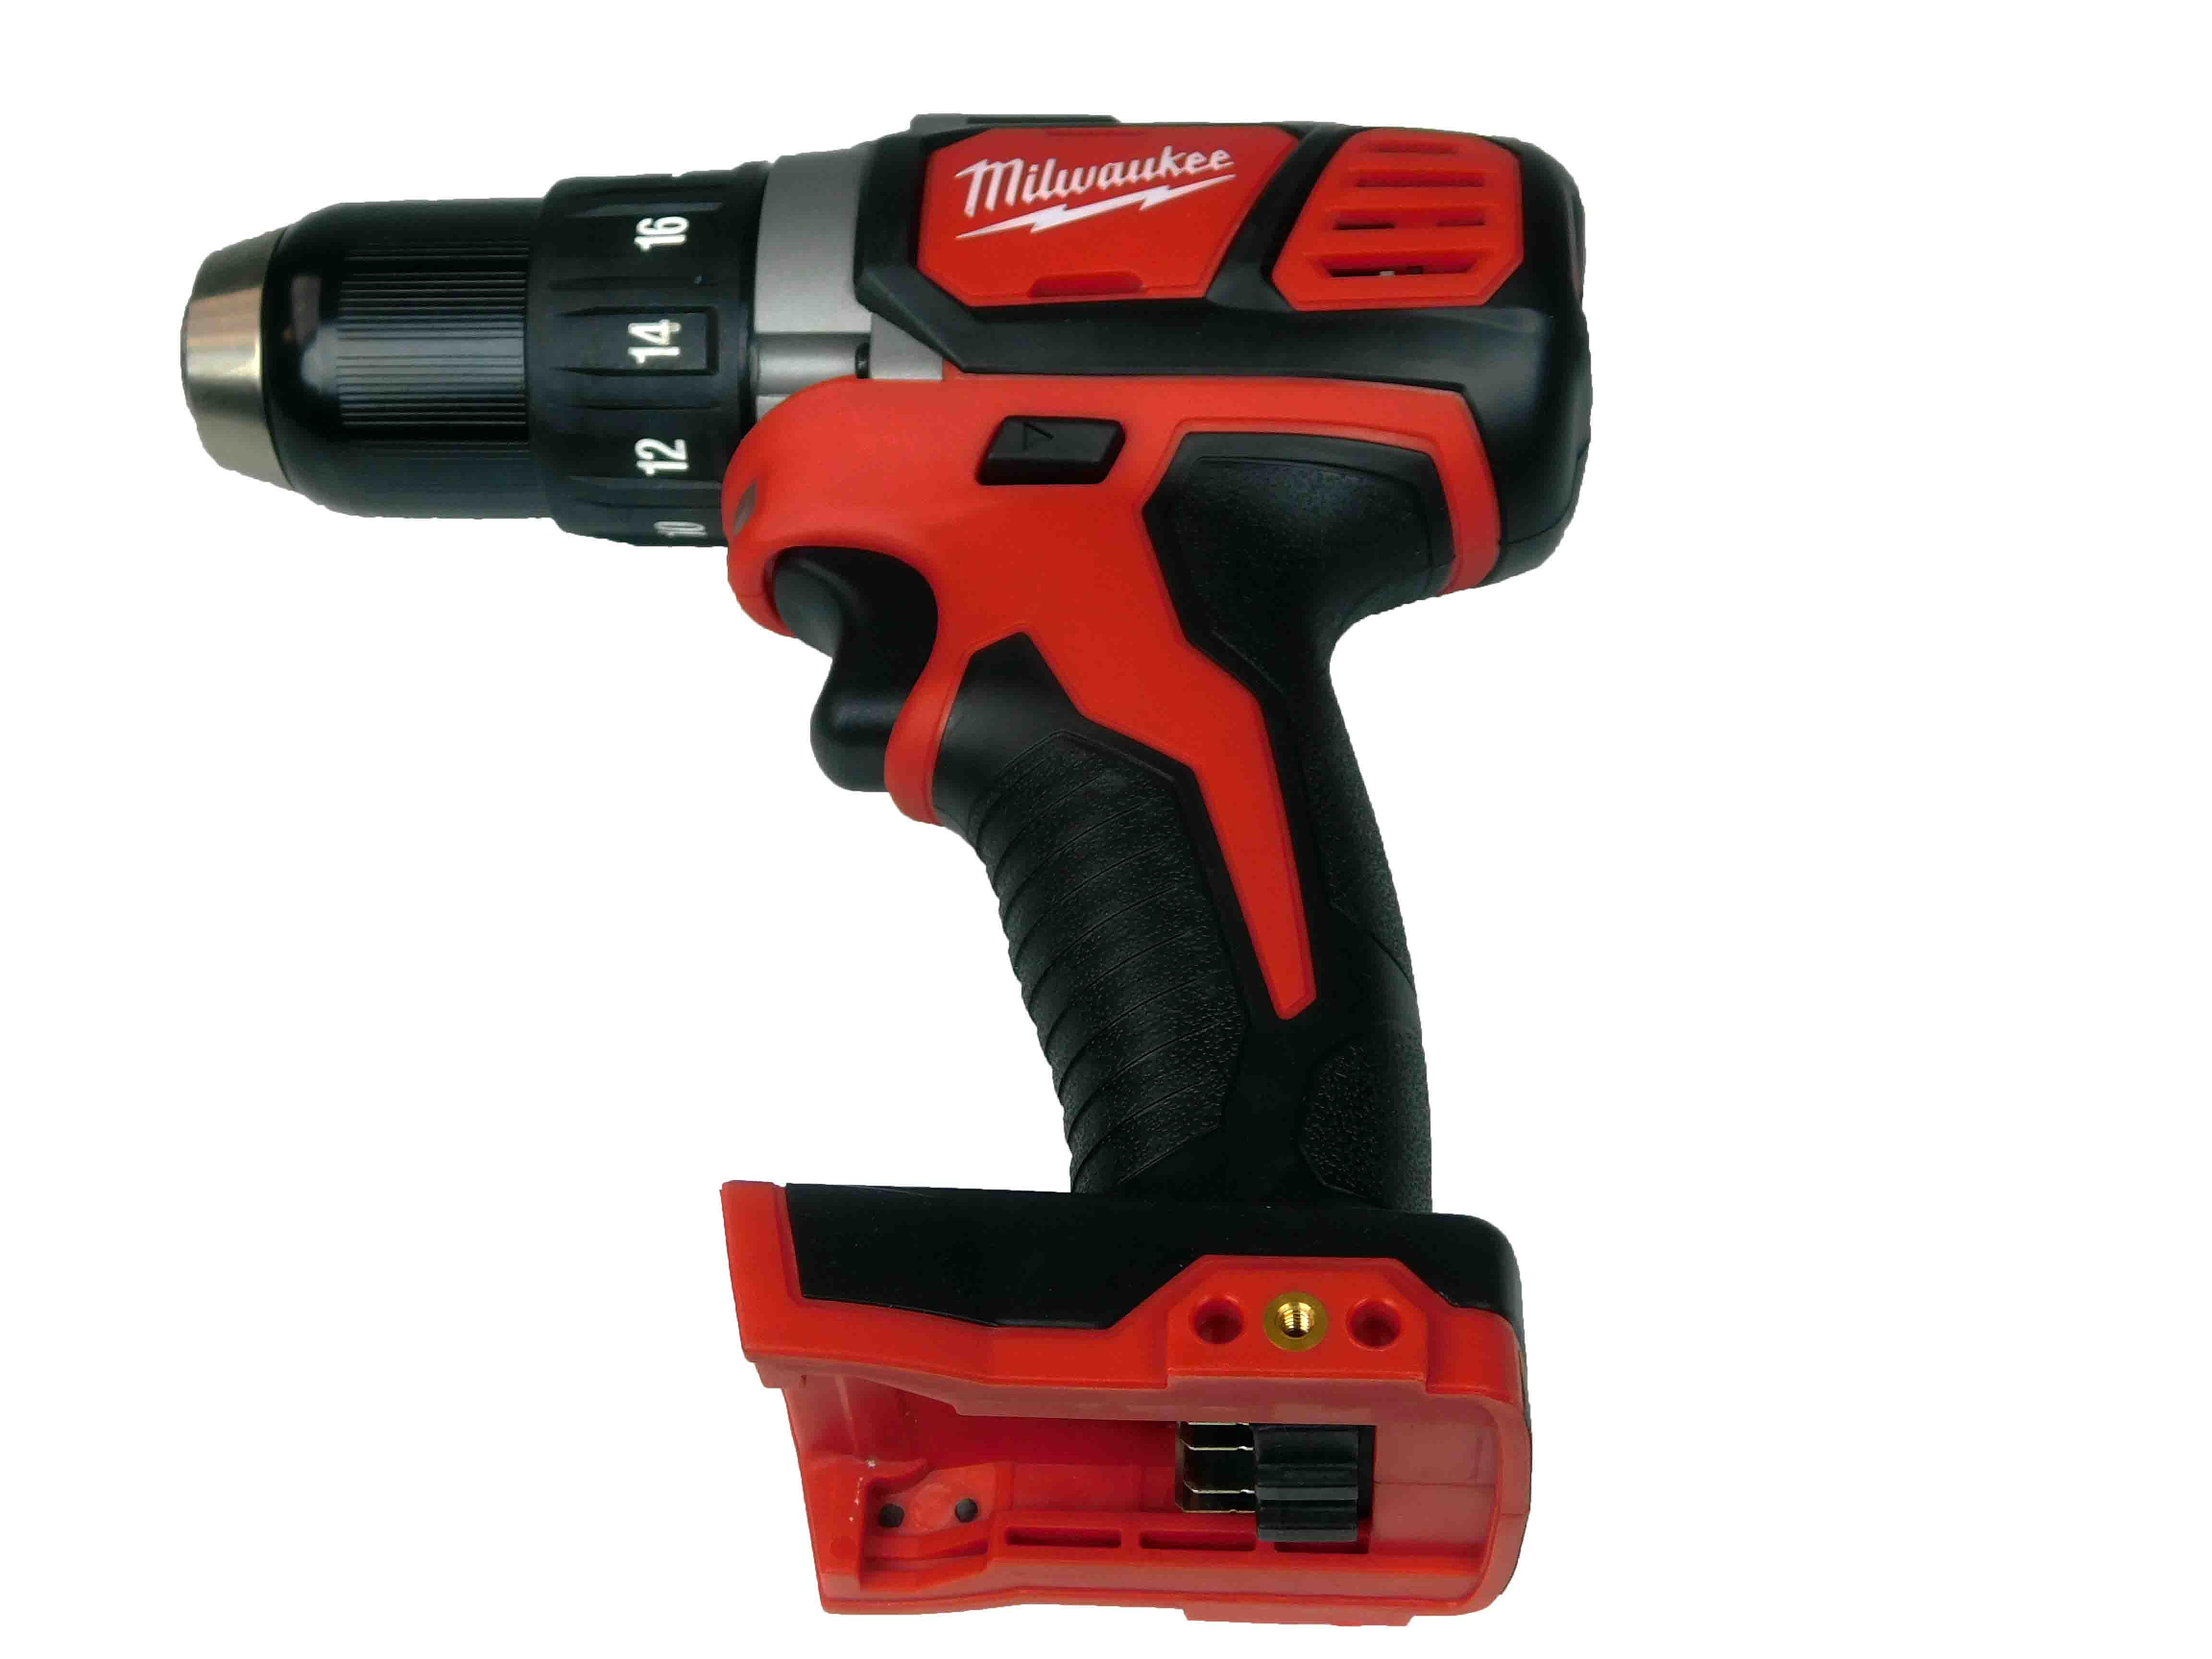 Milwaukee-2606-22CT-M18-Compact-1-2inch-Drill-Driver-Kit-image-2